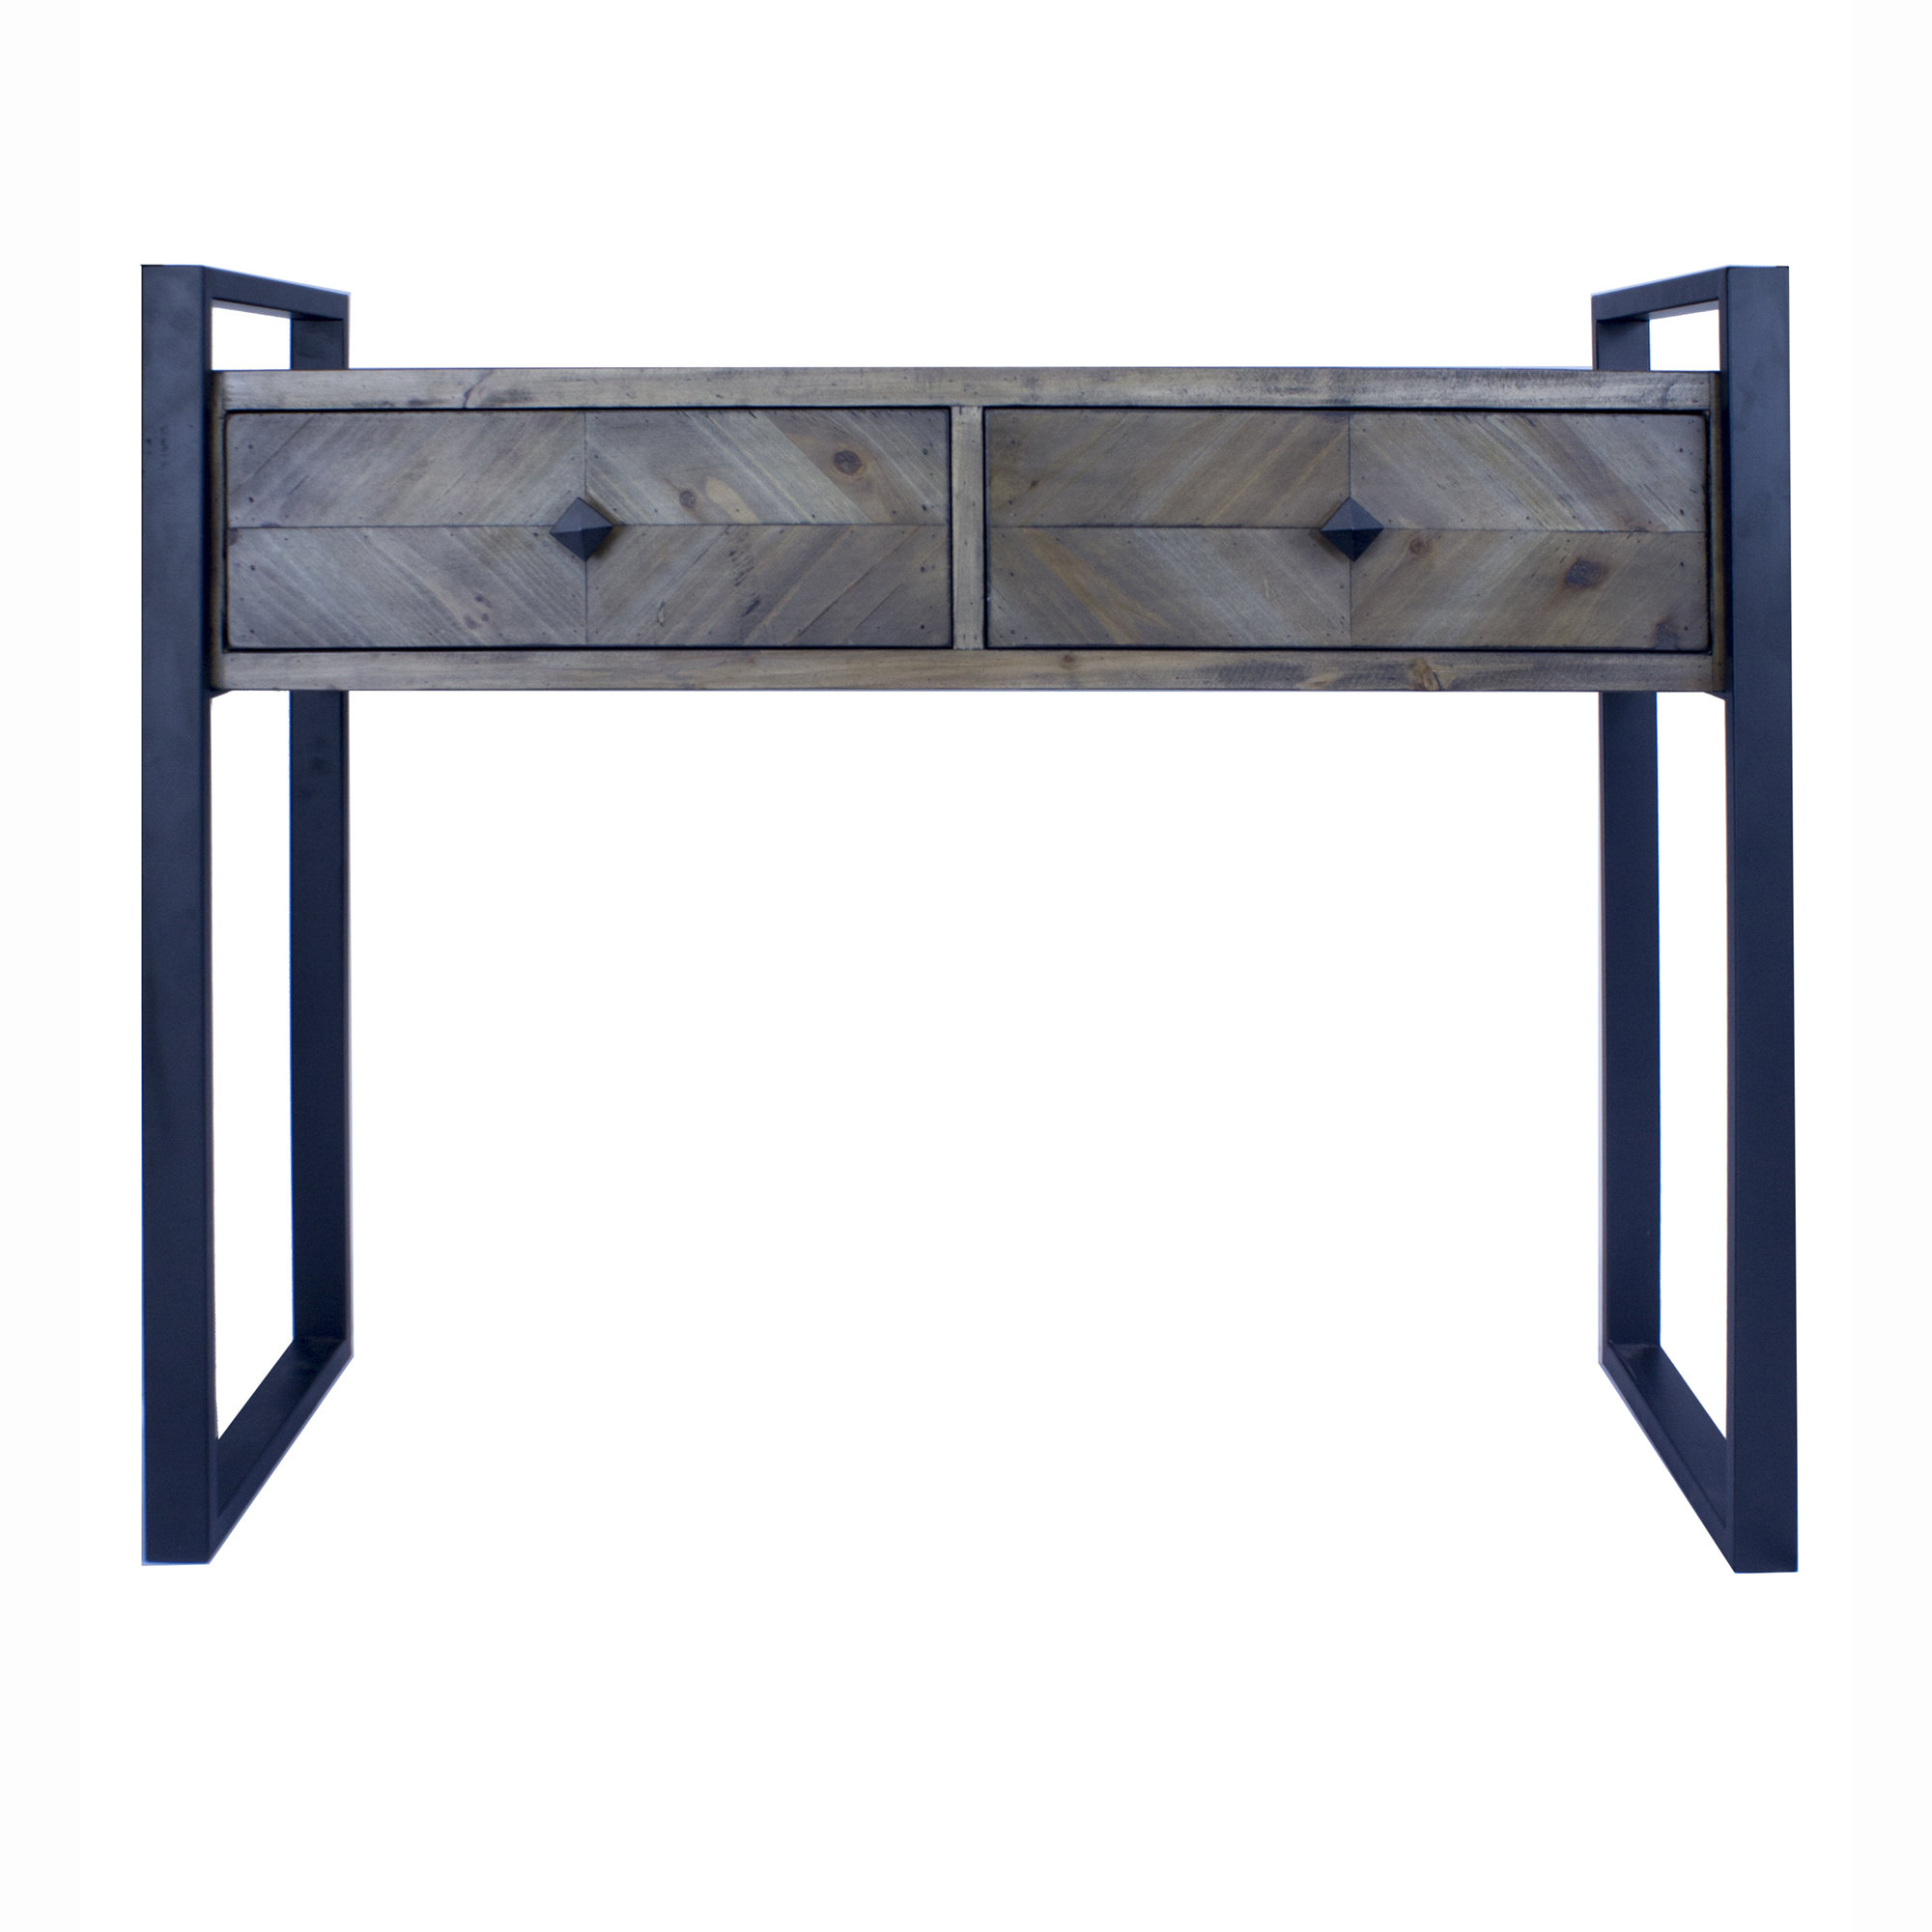 Delphine 2 Drawer Console Table In 2017 Yedinak 5 Piece Solid Wood Dining Sets (View 18 of 20)